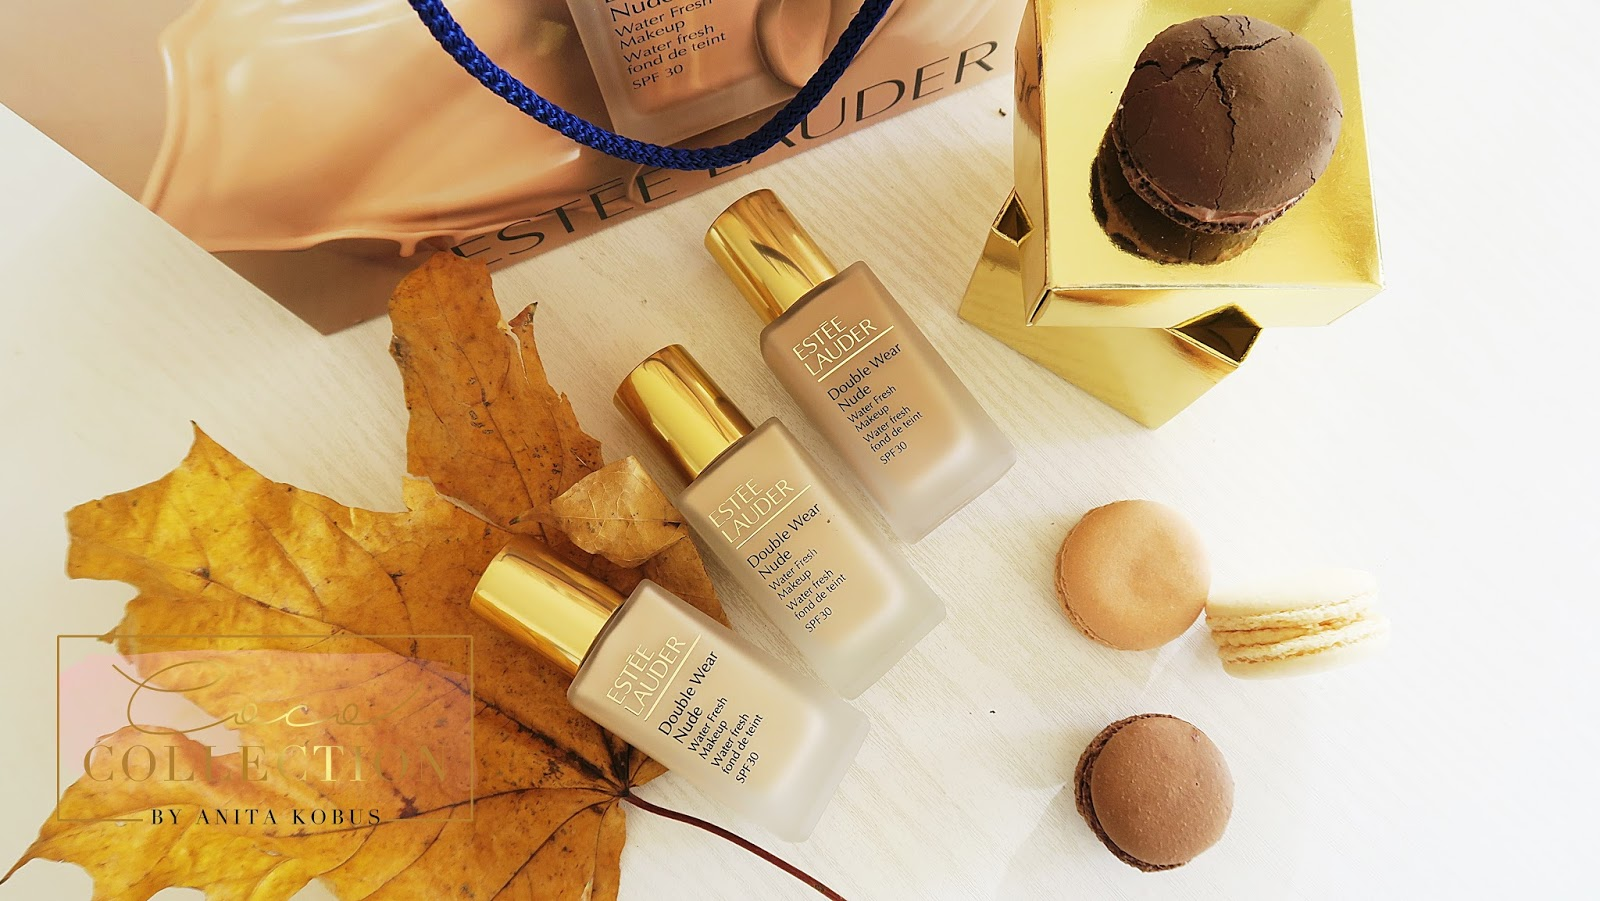 ESTEE LAUDER DOUBLE WEAR NUDE WATER FRESH MAKEUP SPF 30